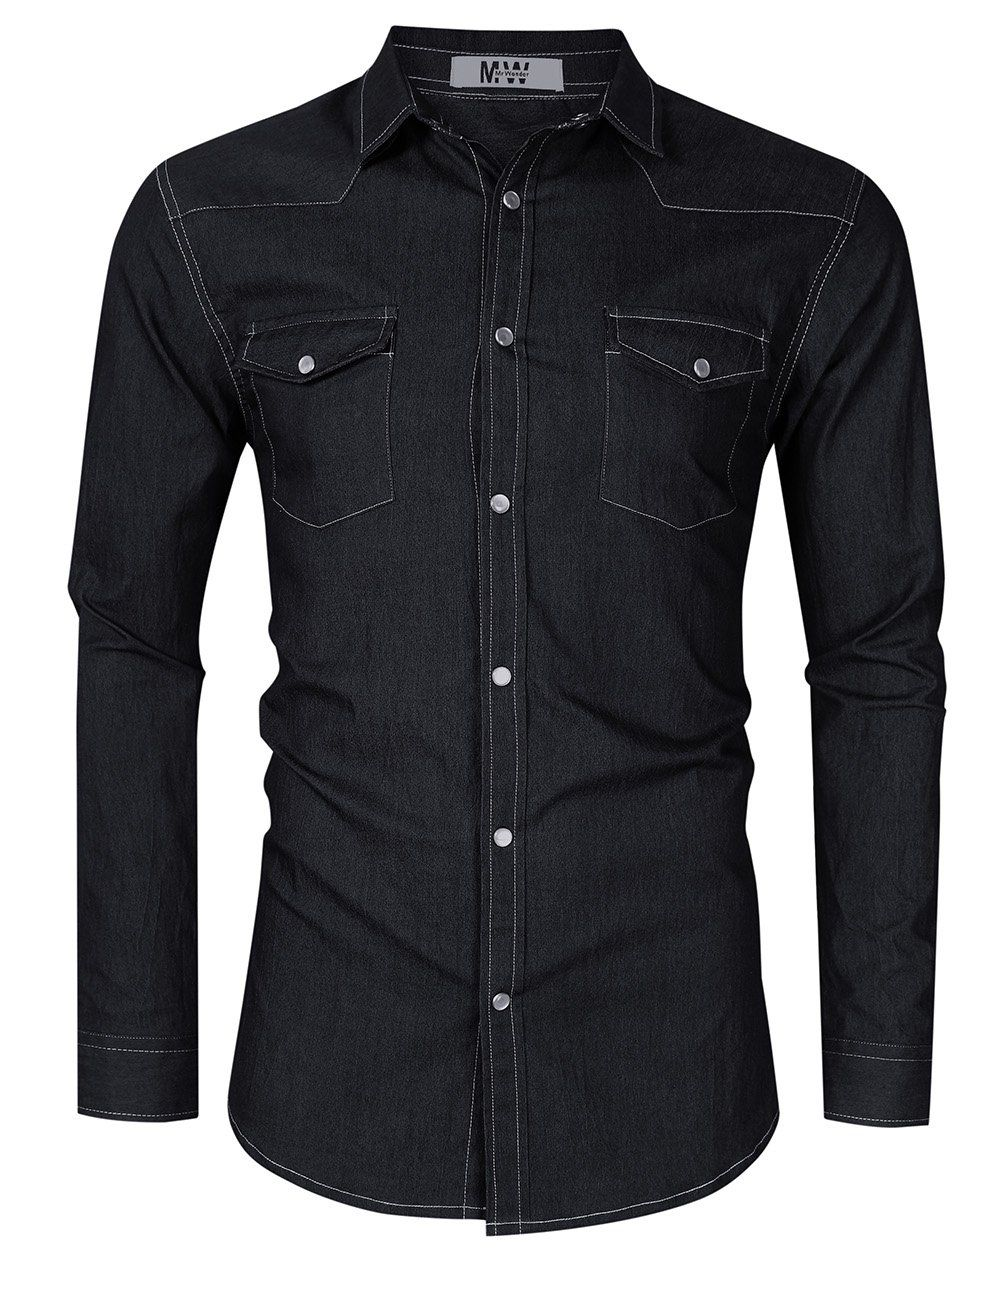 7d7ba9cd9c8 MrWonder Mens Casual Slim Fit Button Down Shirt Long Sleeve Denim Shirts  Western Grey L   Details can be found by clicking on the image.